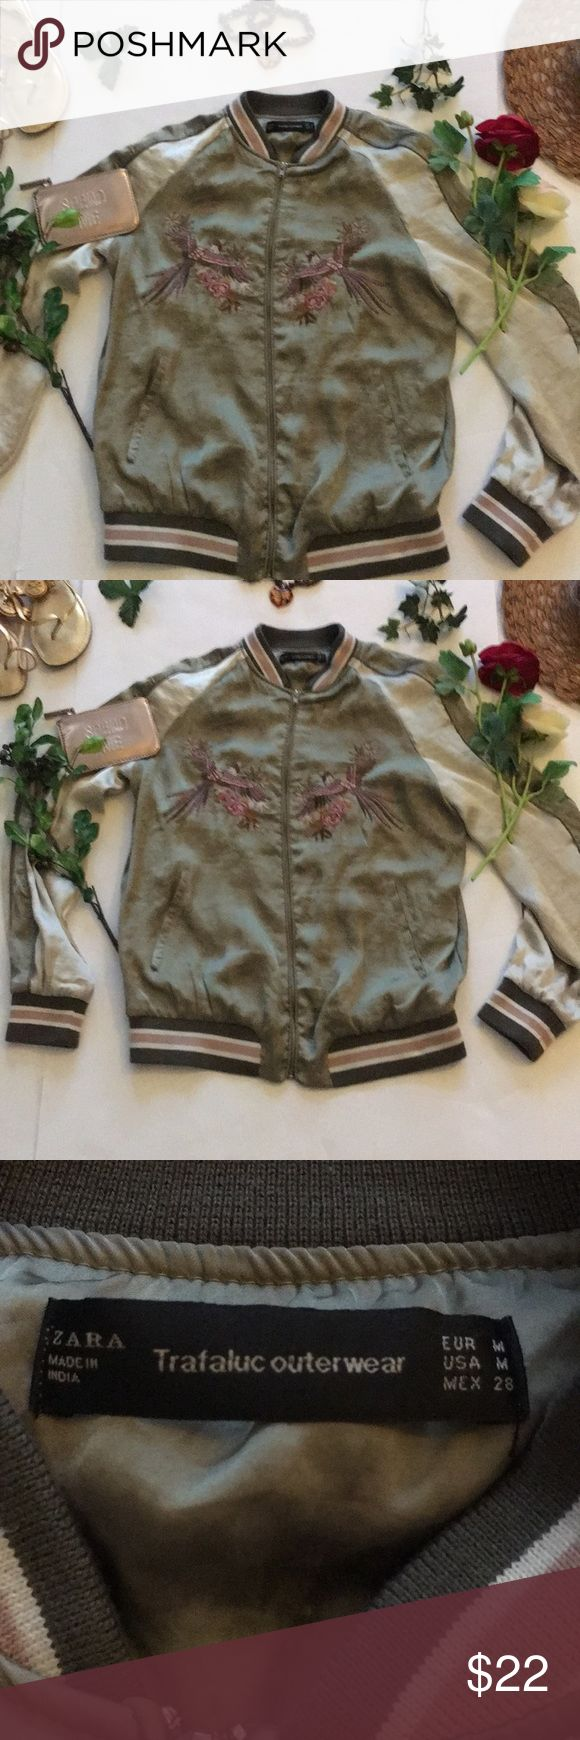 ❤Zara Jacket❤ ❤in good used condition Zara Bomber Jacket in size Medium❤Shows sign of wear❤Has a small discoloration on the front which is pictured on last photo❤ Zara Jackets & Coats